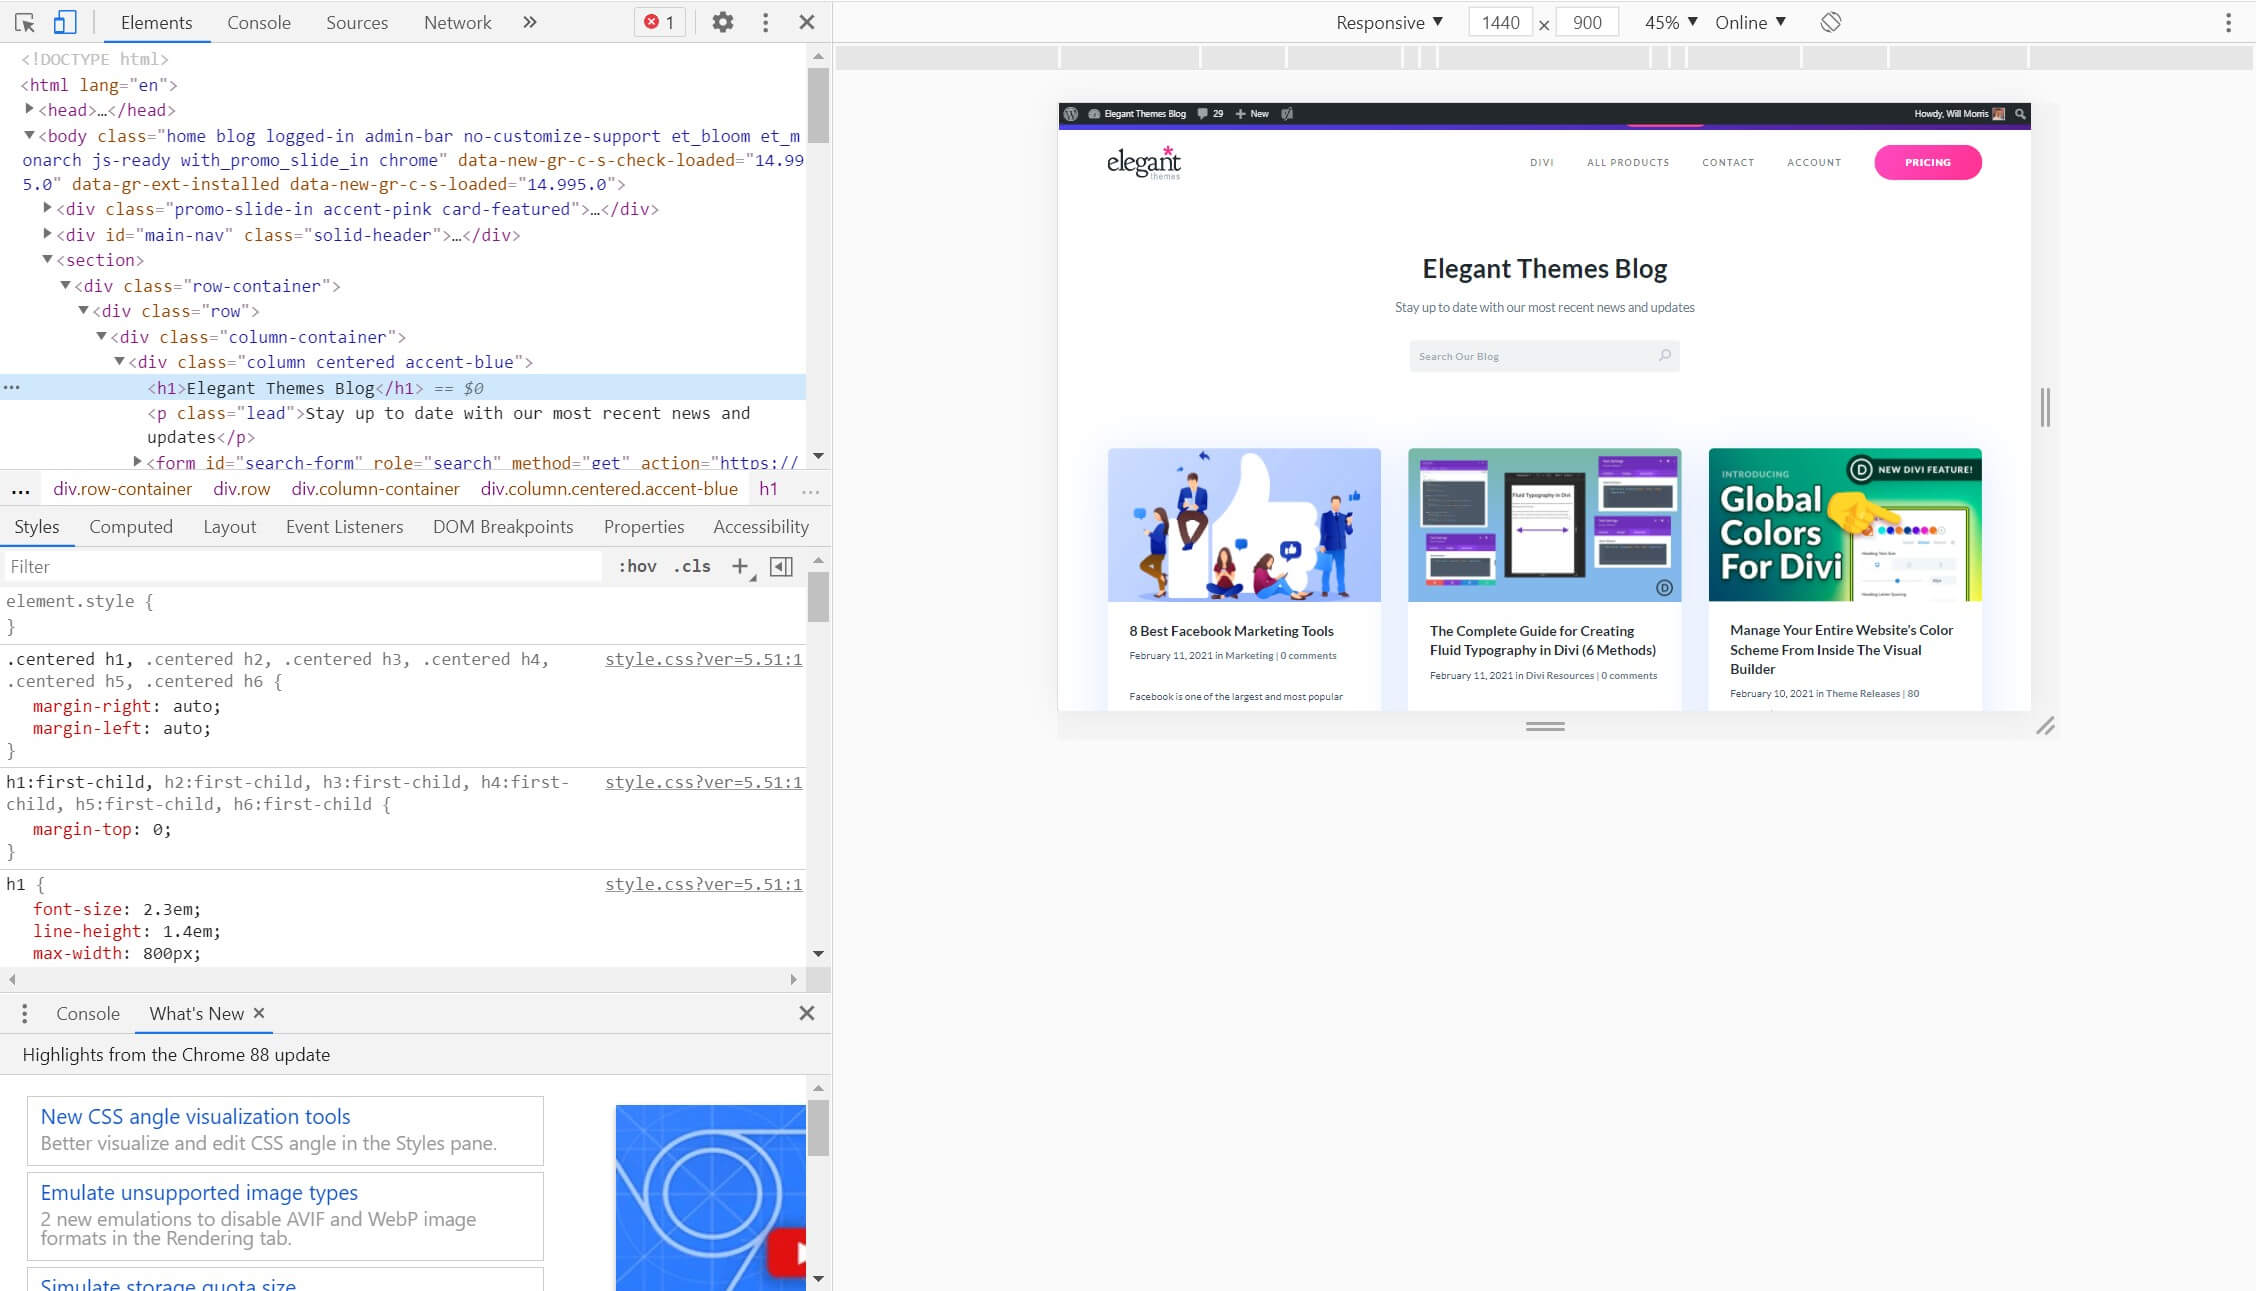 The Inspect Element tool in Chrome.